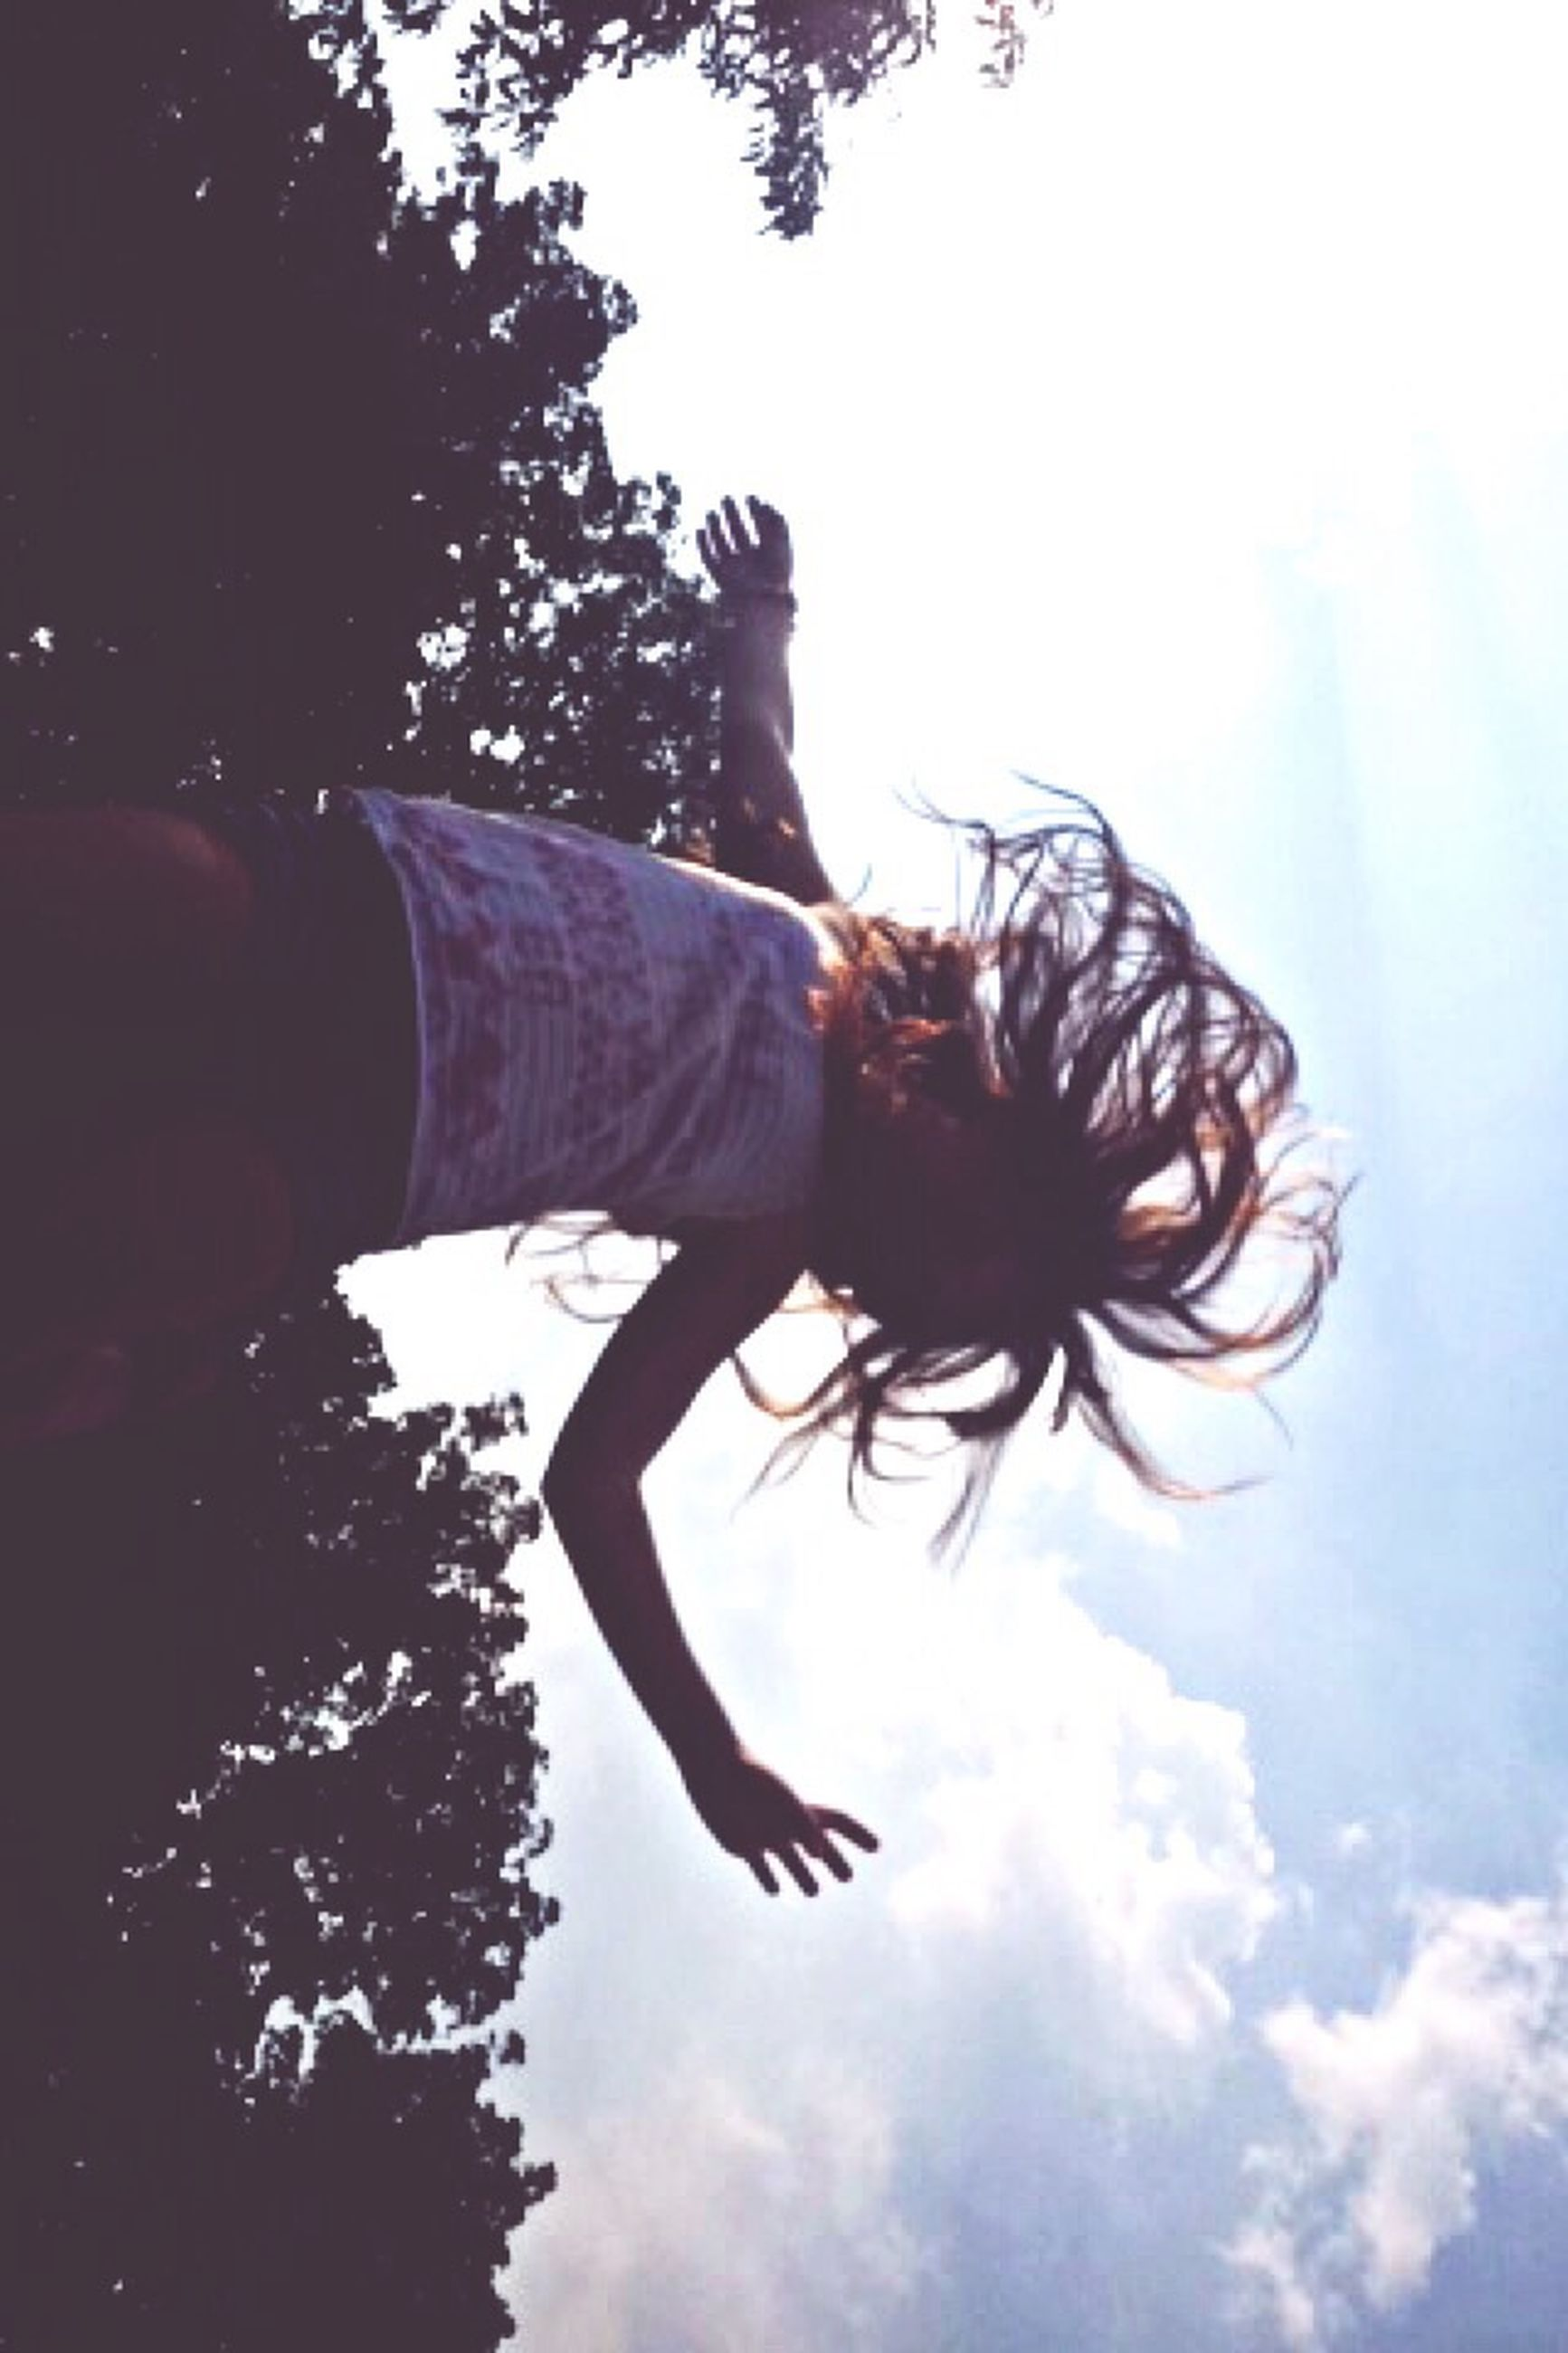 sky, silhouette, mid-air, low angle view, flying, cloud - sky, nature, outdoors, tree, full length, day, cloud, leisure activity, lifestyles, side view, beauty in nature, motion, sunlight